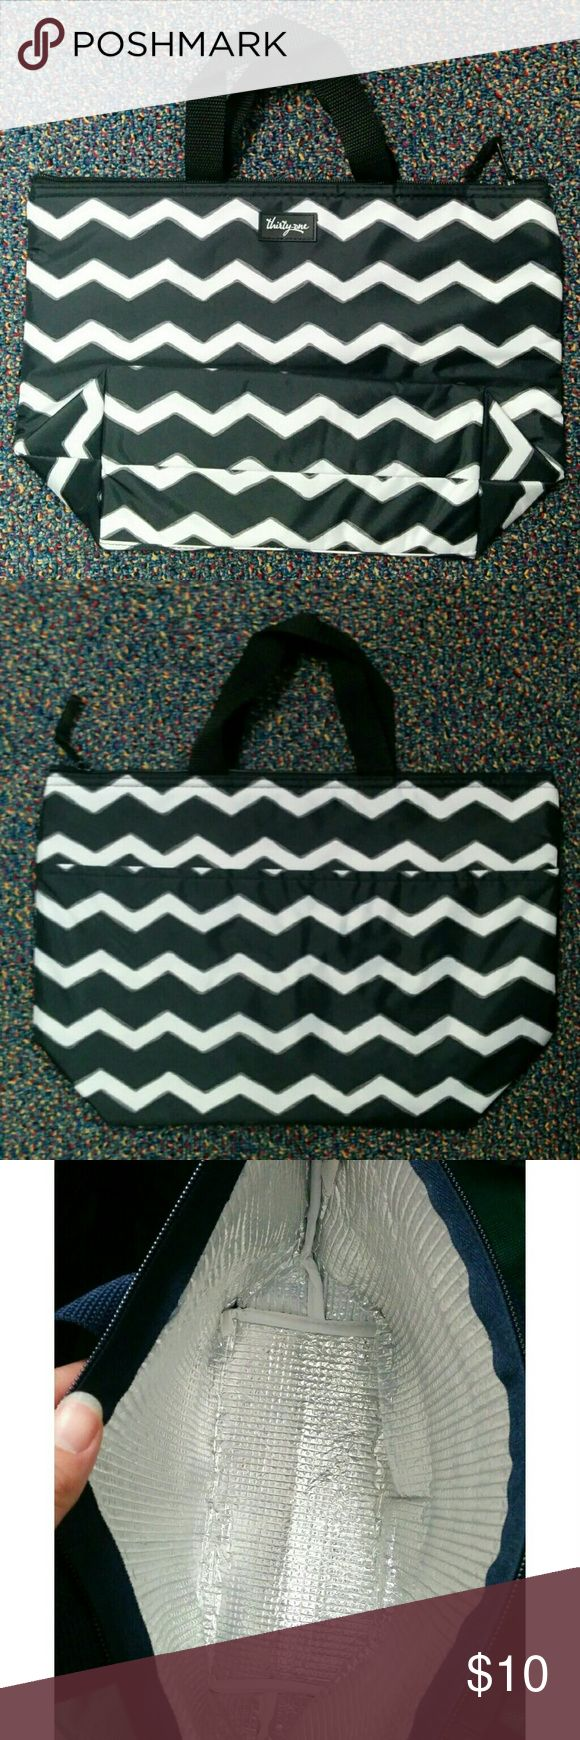 NEW Thirty One Thermal Insulated Lunch Tote Brand New insulated lunch bag by Thirty-One.  Colors are black and white. Thirty One Bags Totes